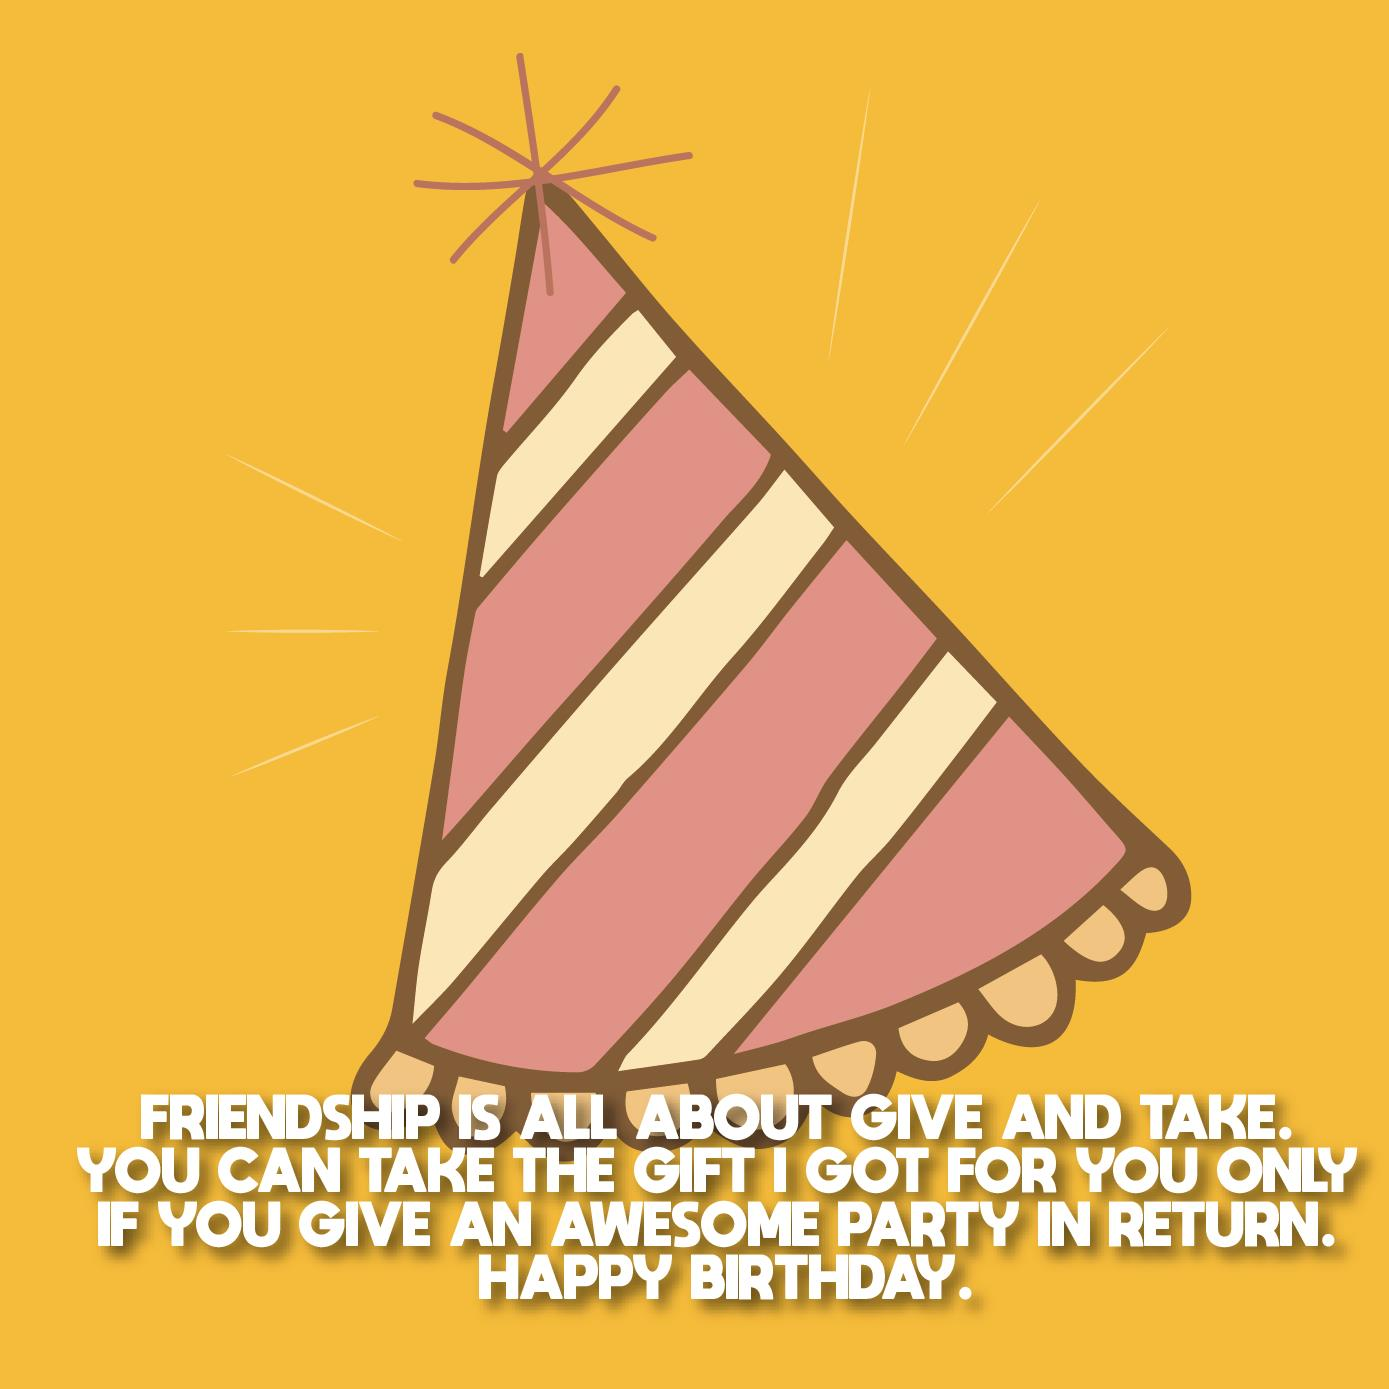 humorous-birthday-wishes-01